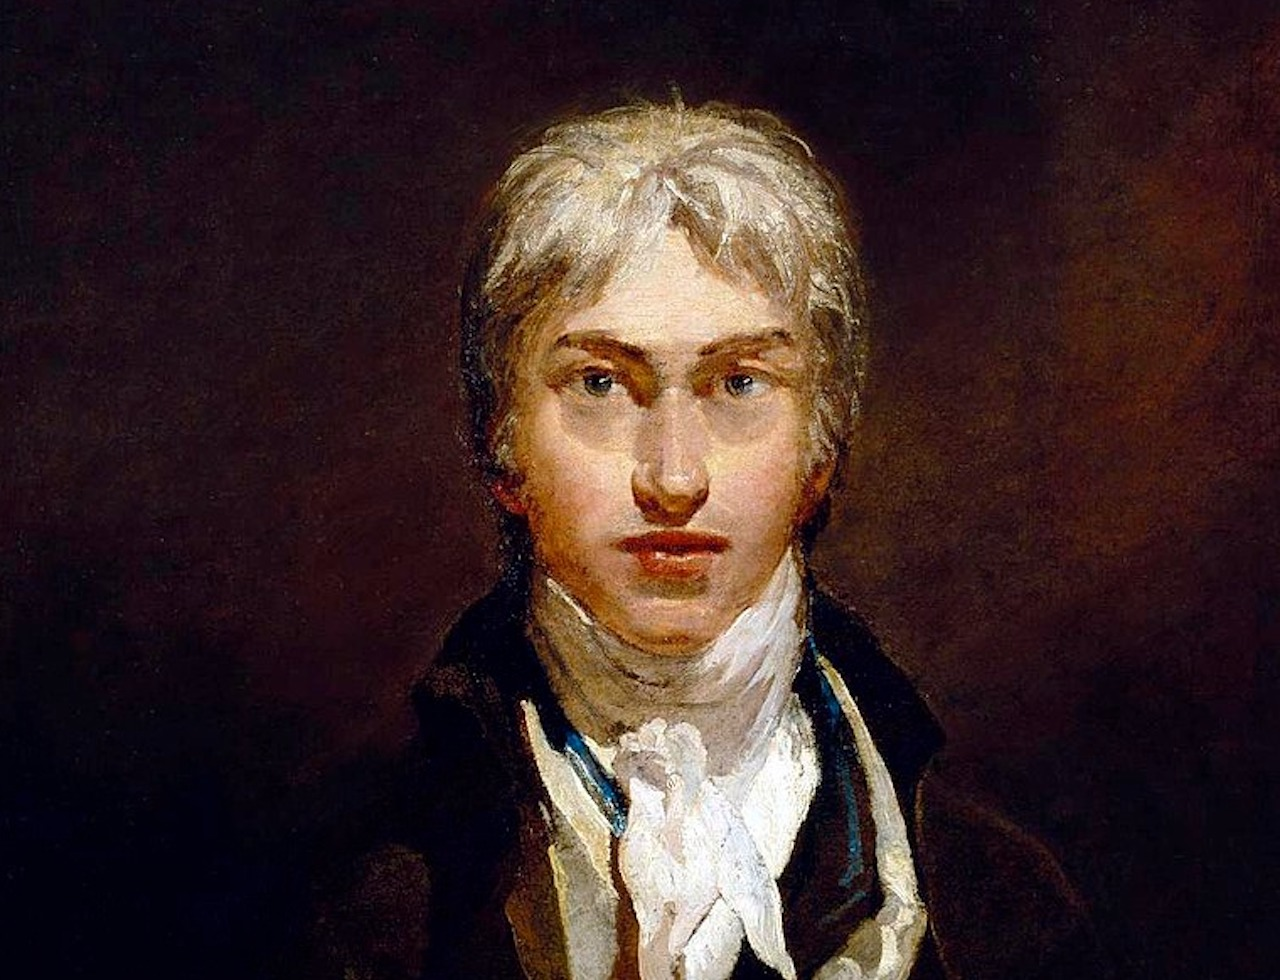 chi era william turner